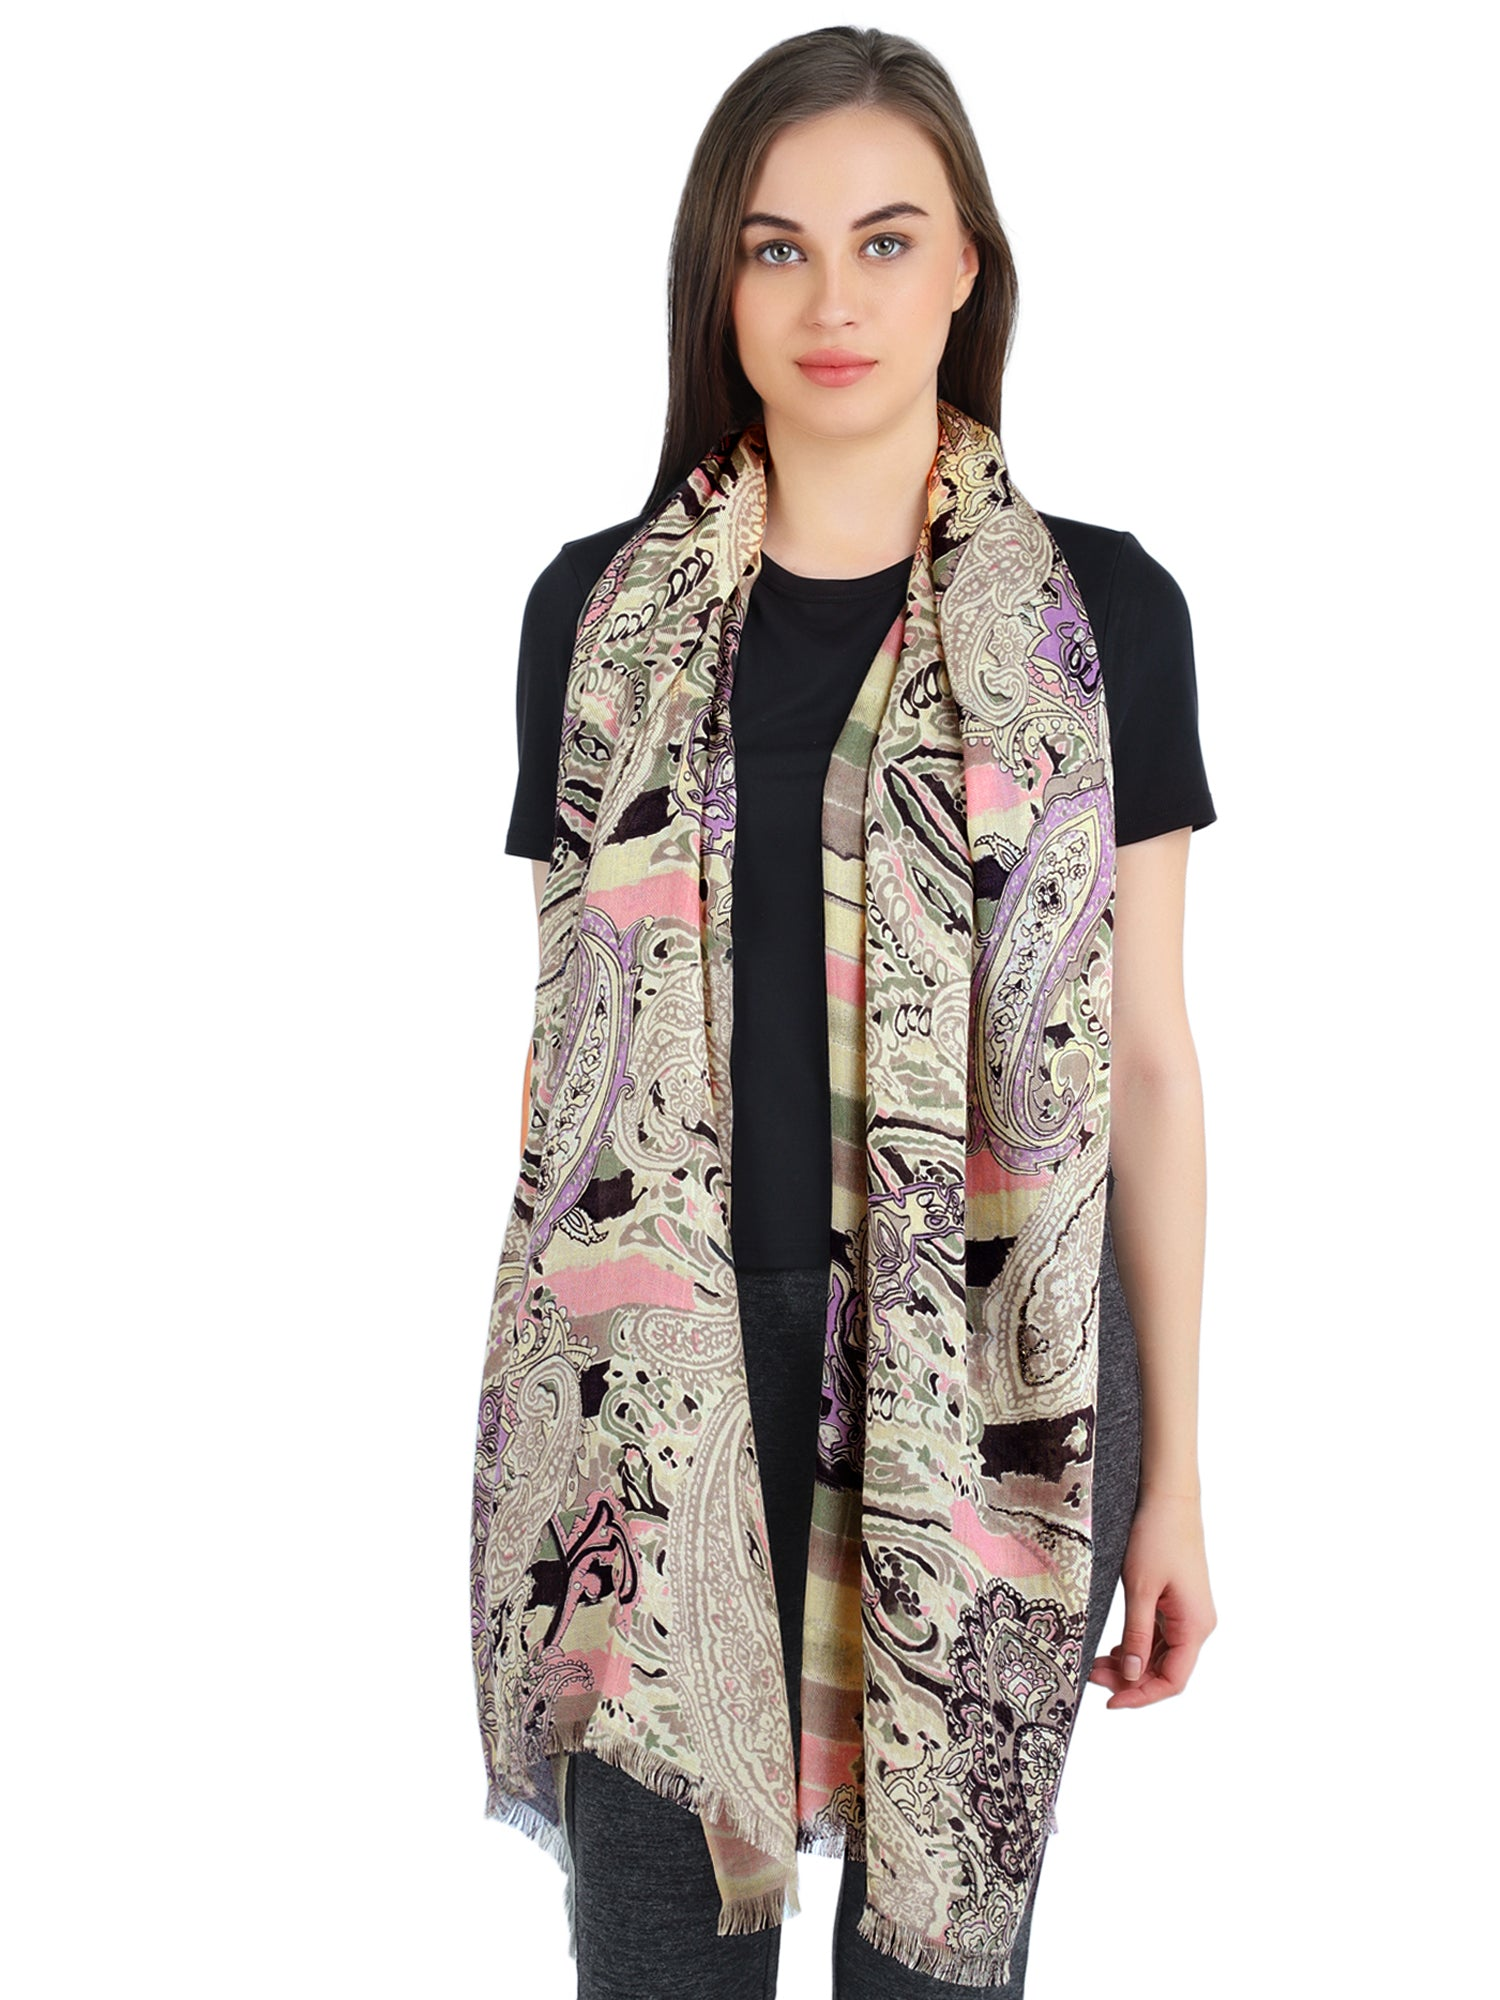 Pashma Paisley printed beaded scarf crafted in Silk Cashmere Twill